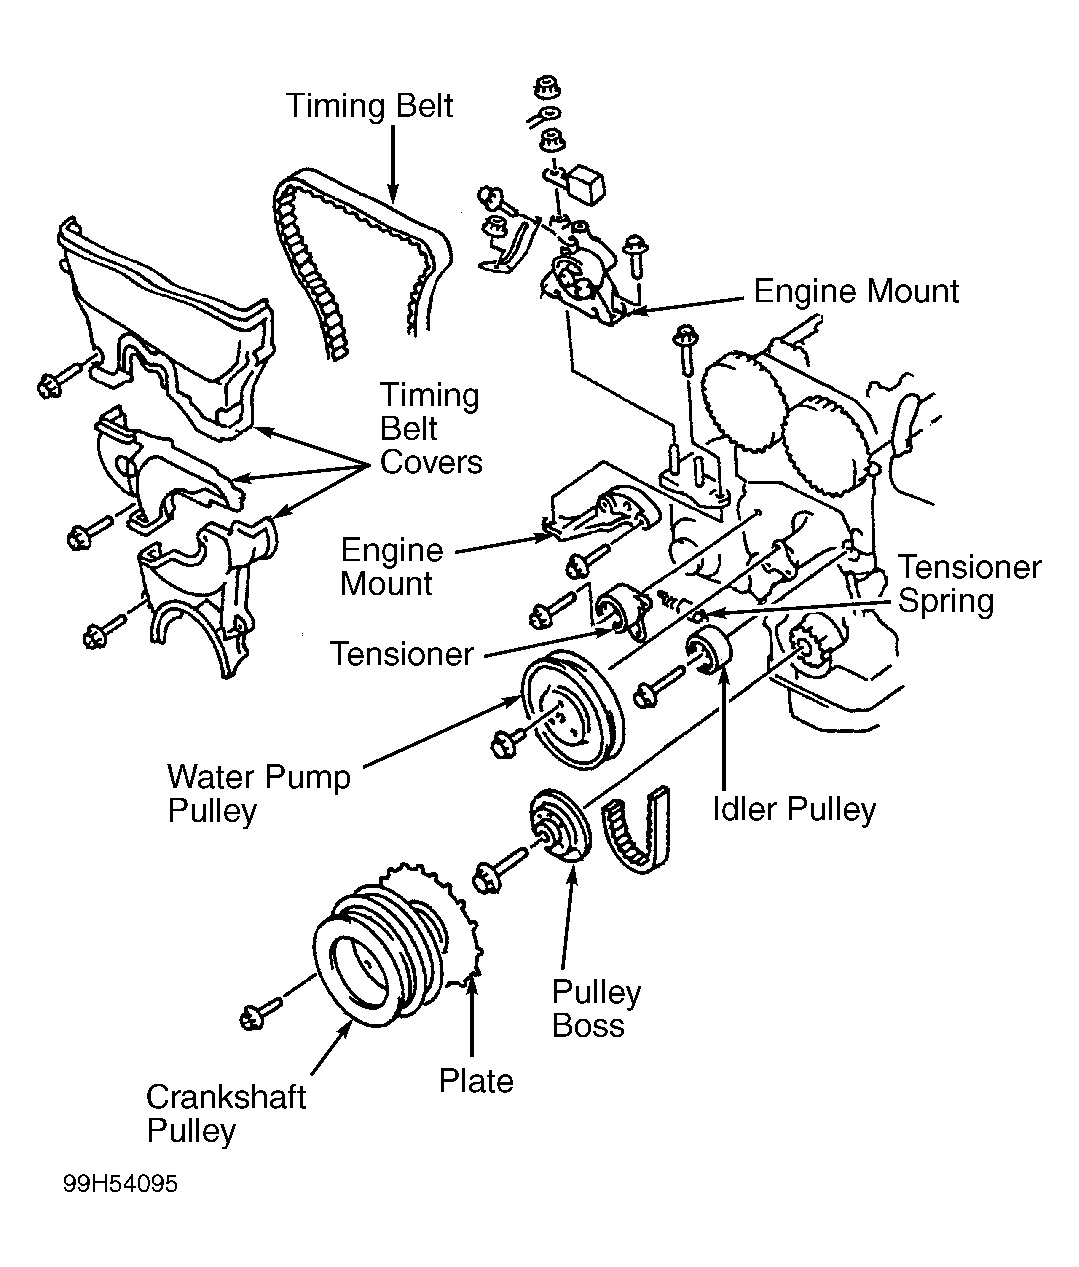 install 2001 v6 engine diagram